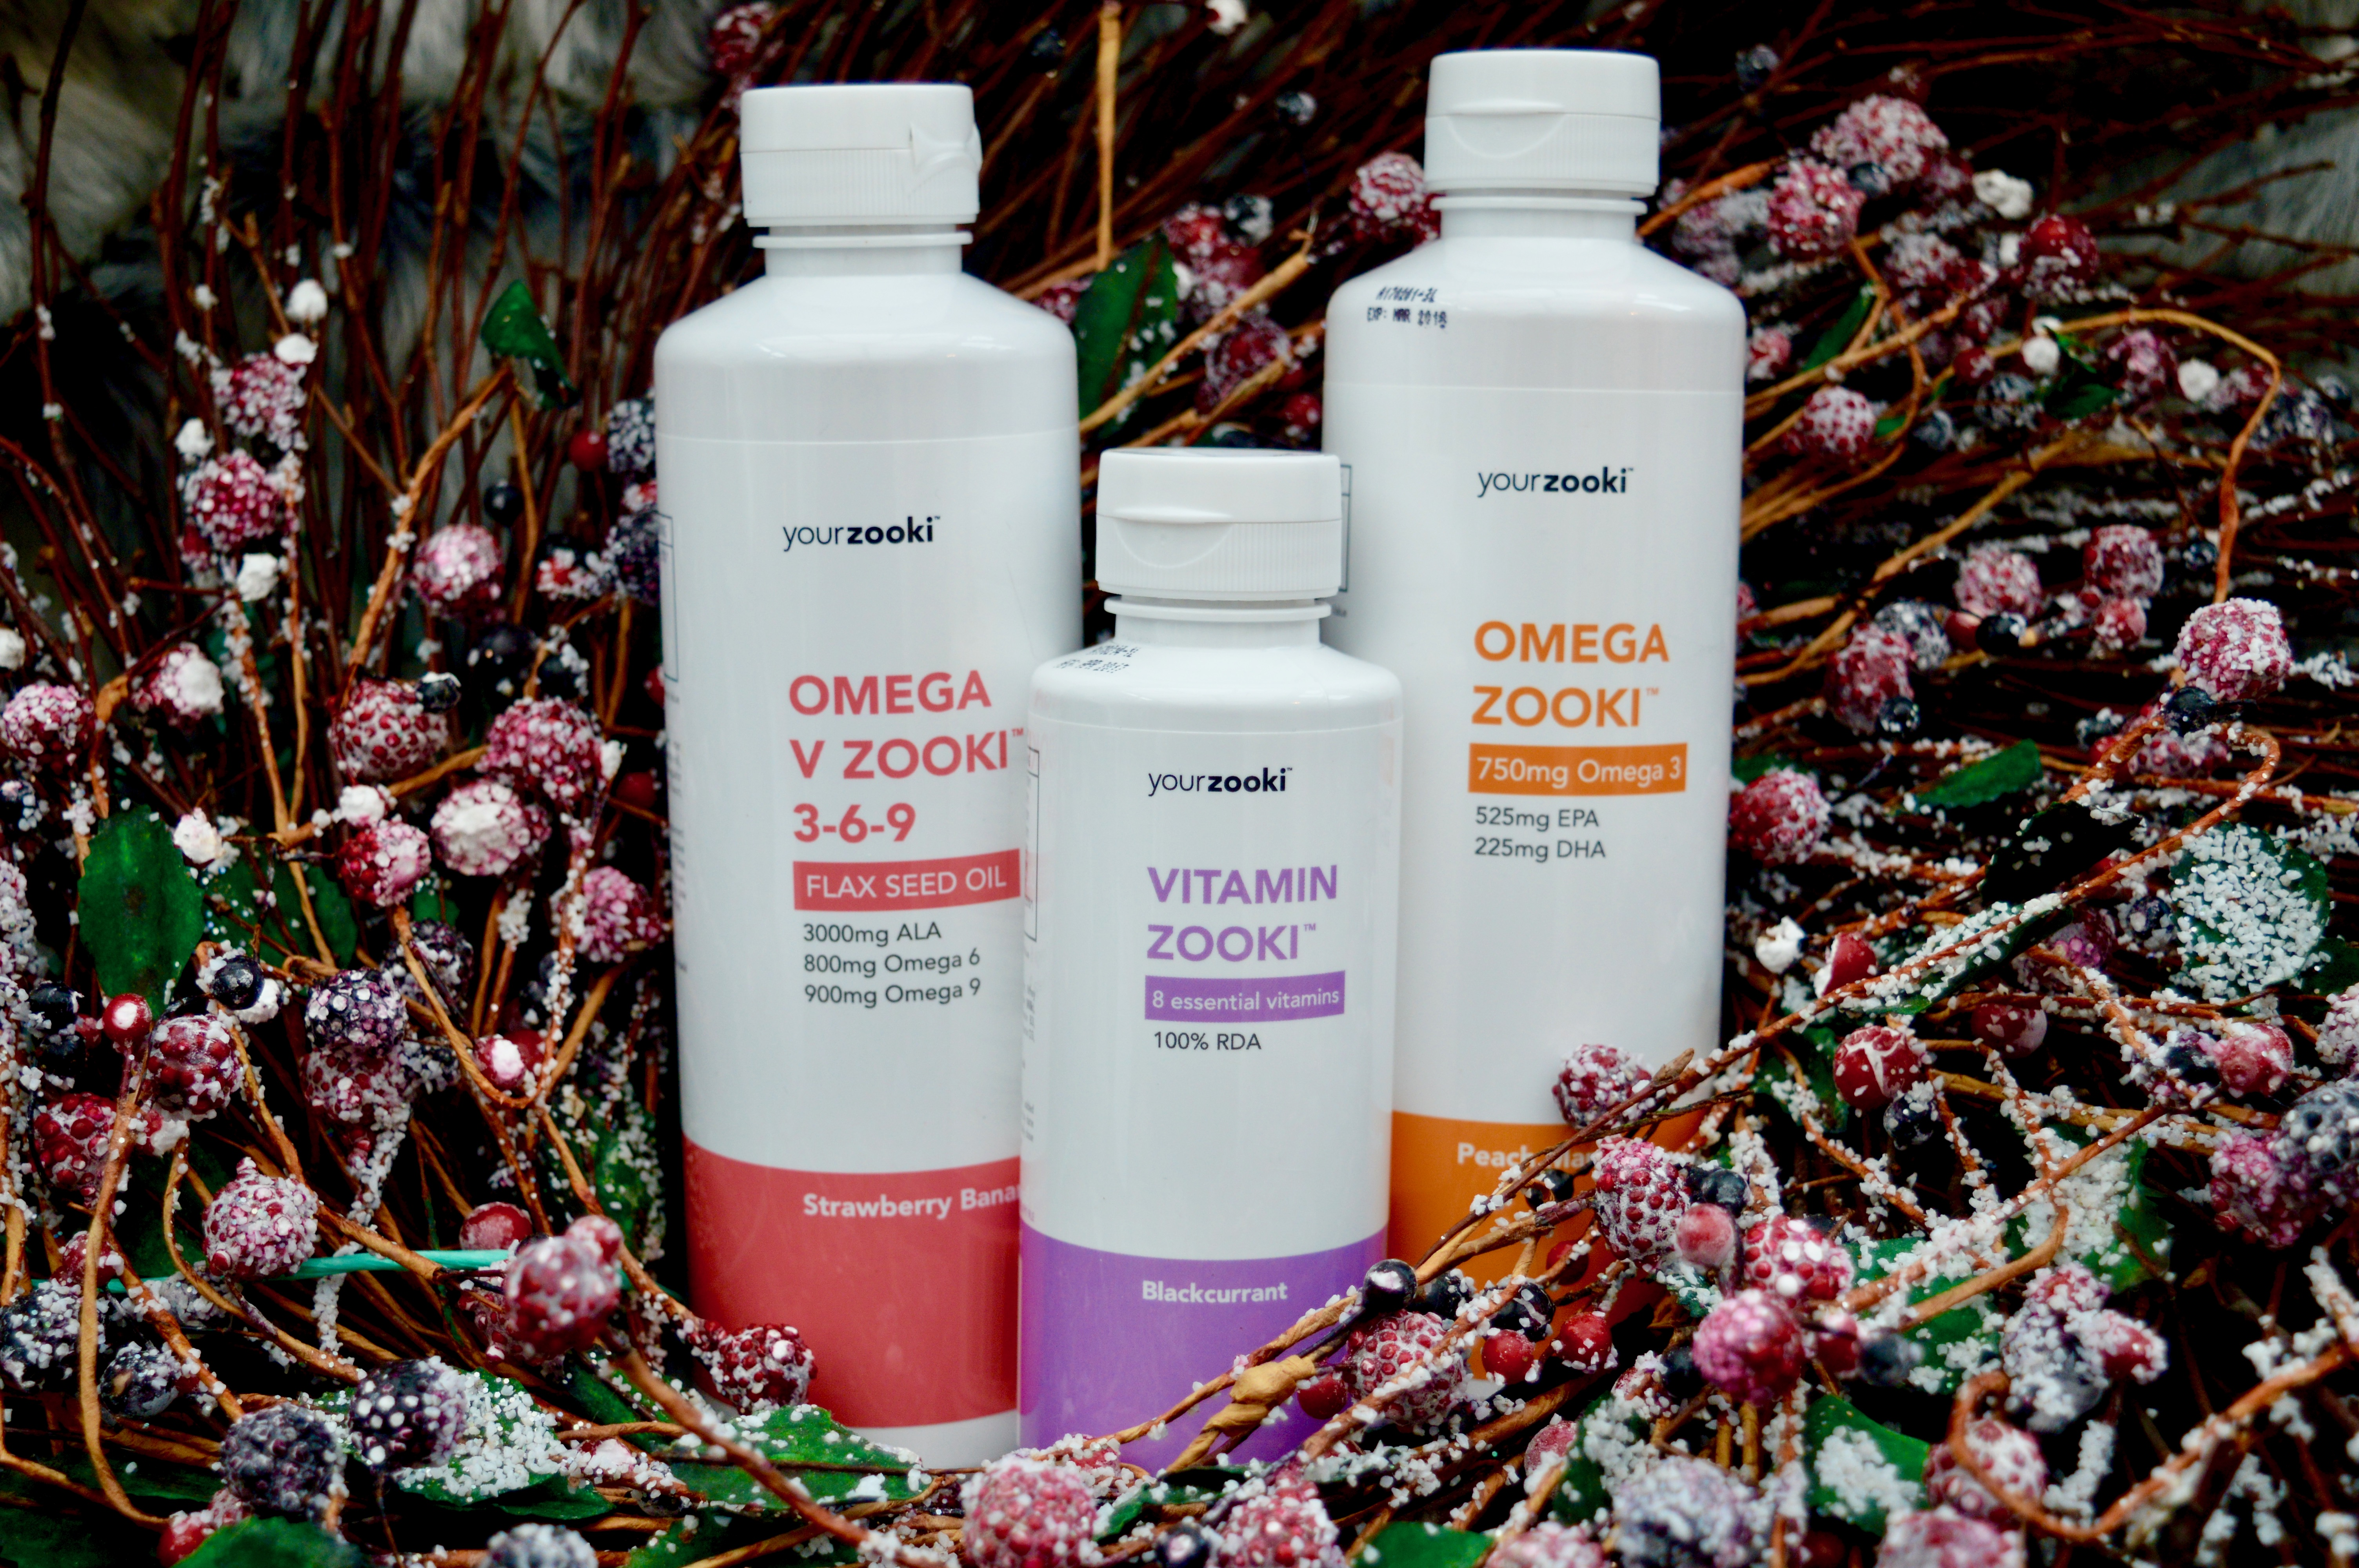 Yourzooki Vitamins | What to buy fitness fanatics| Christmas Gift Guide | Elle Blonde Luxury Lifestyle Destination Blog